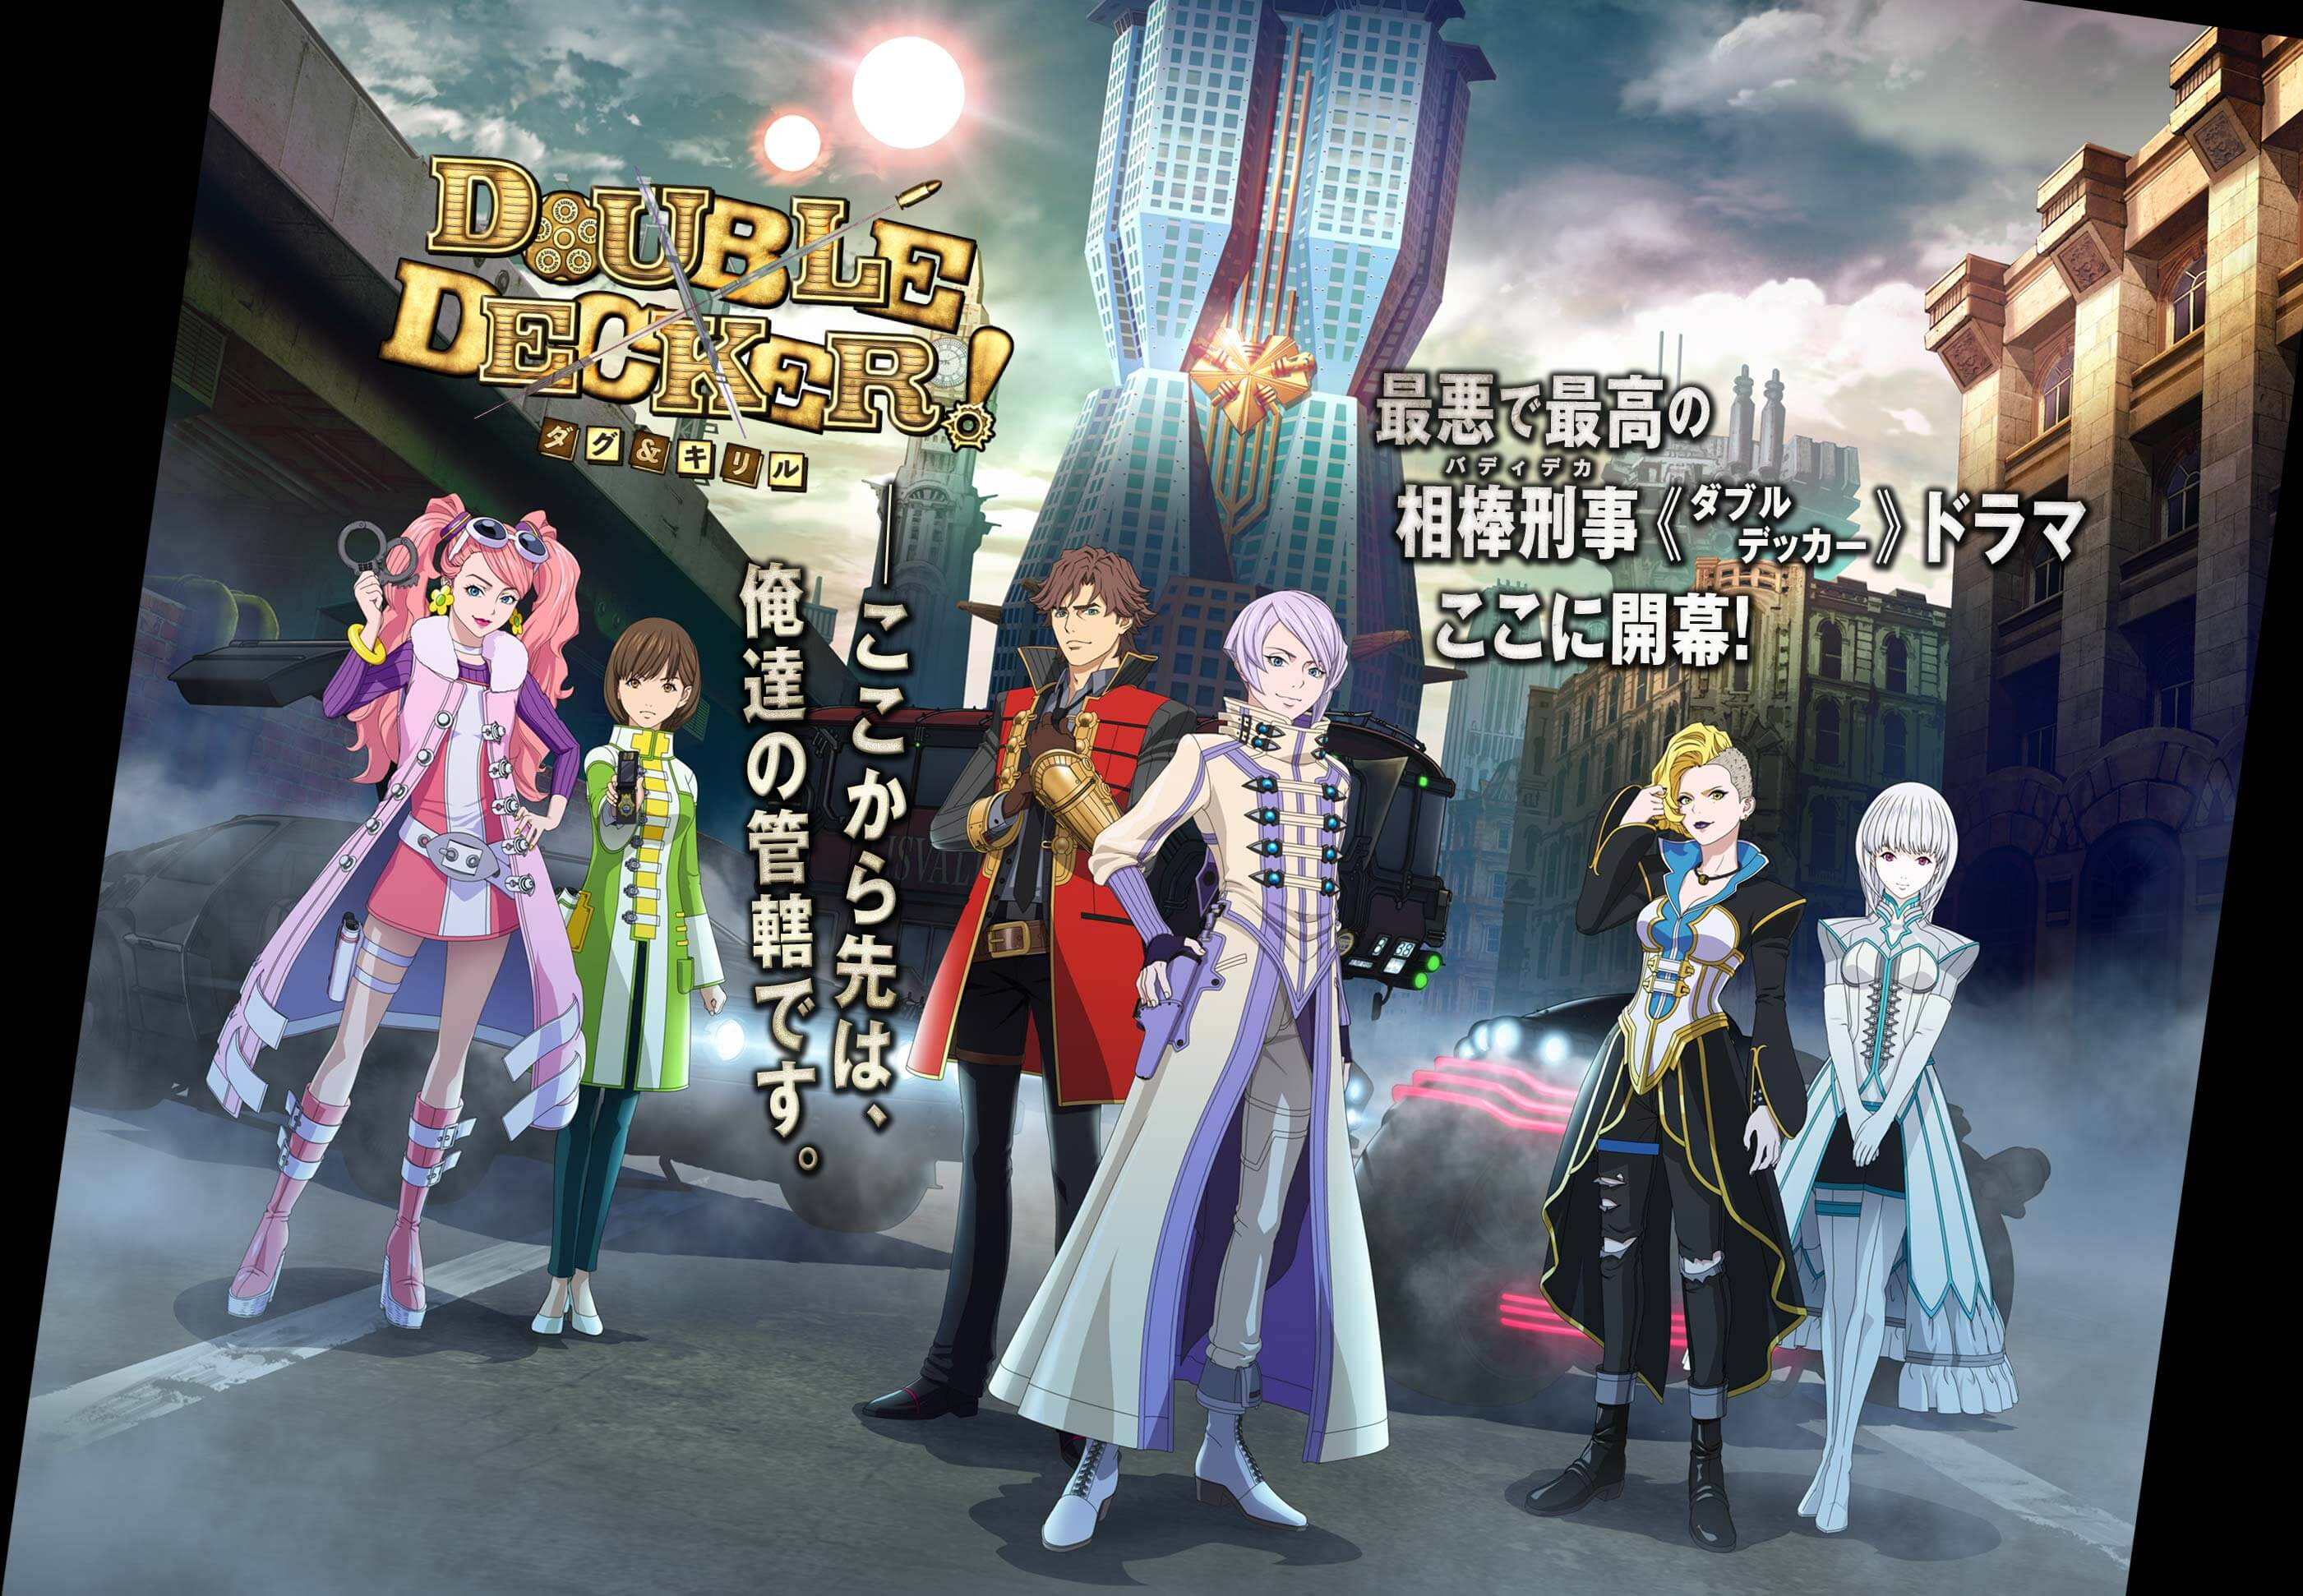 The Fall Tv Series Wallpaper Double Decker Anime Gets Ready For Fall With New Visual